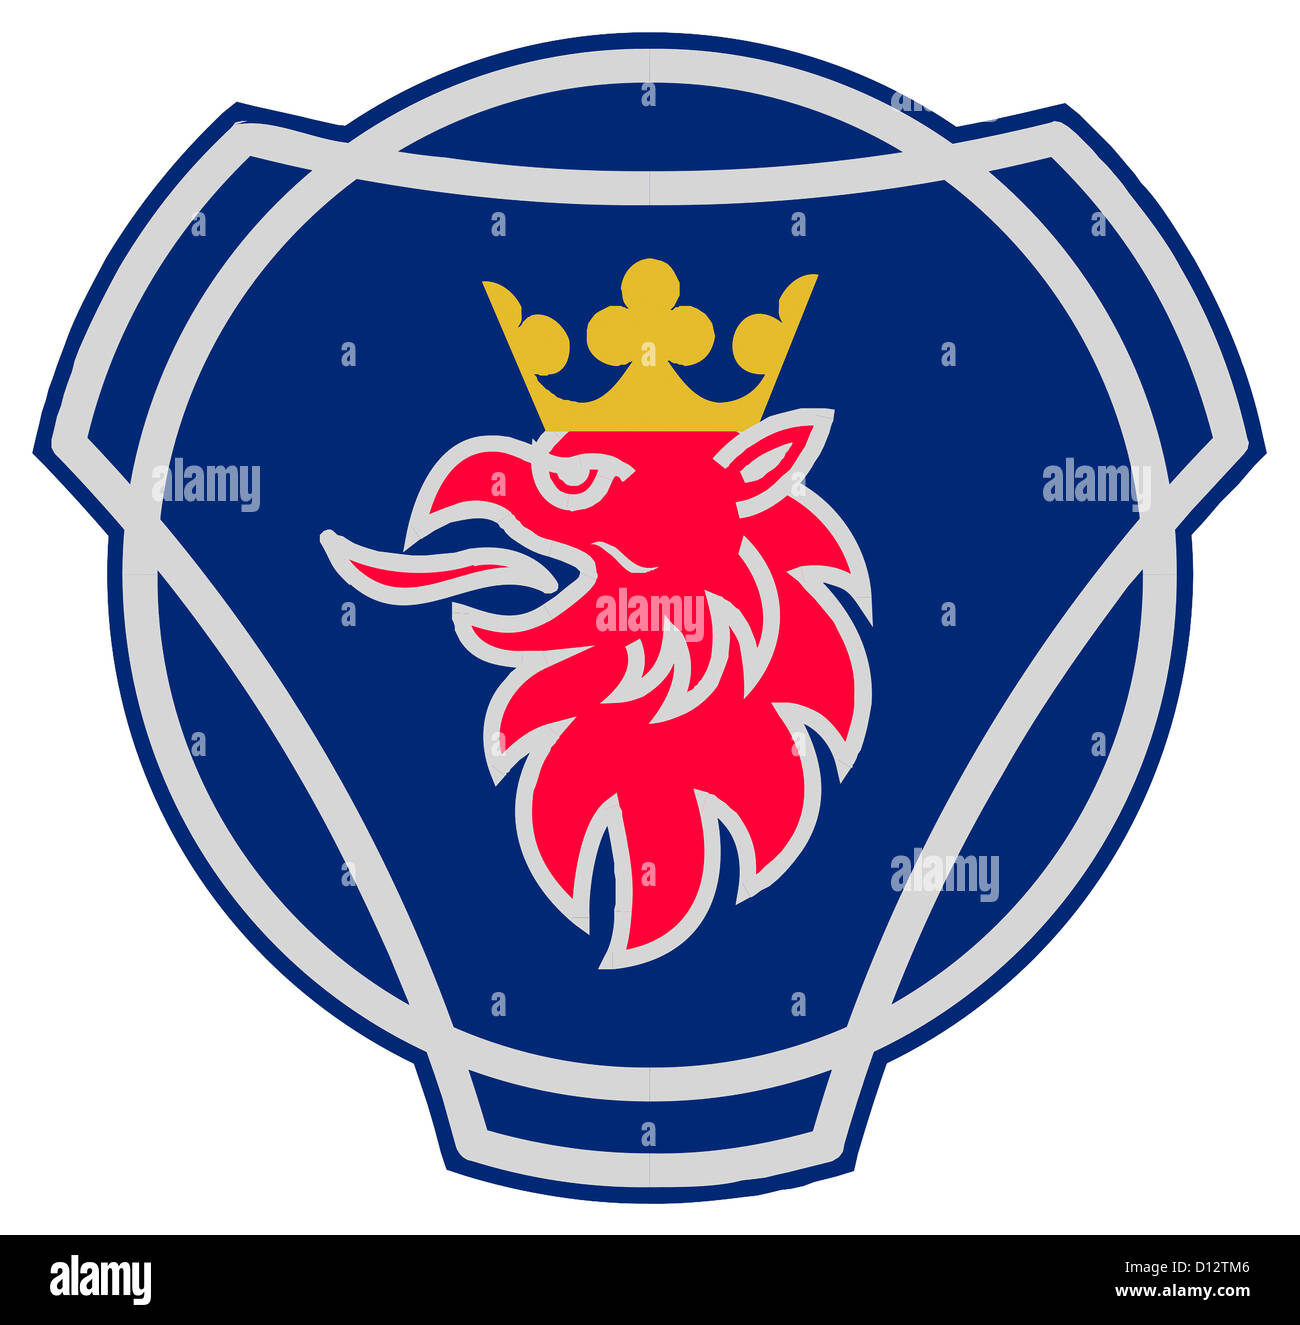 logo of the swedish vehicle manufacturer scania with seat